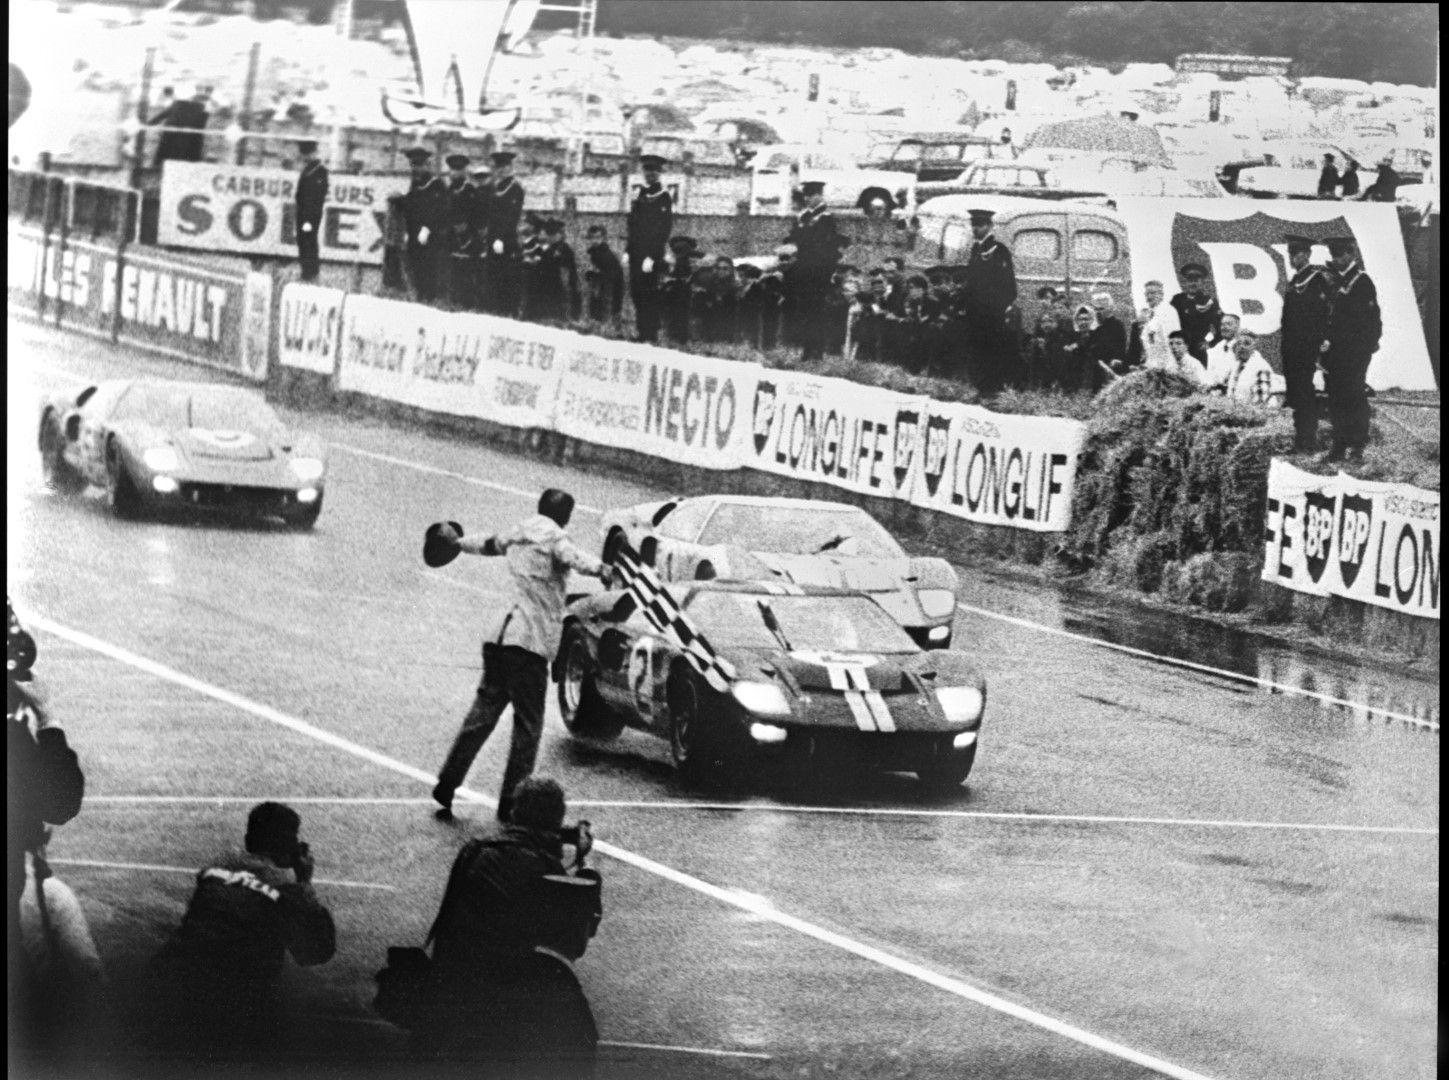 Trio Of Ford Gt40 Mk Iis Cross Finish Line At Le Mans 1966 Ford Gt Ford Gt40 Le Mans